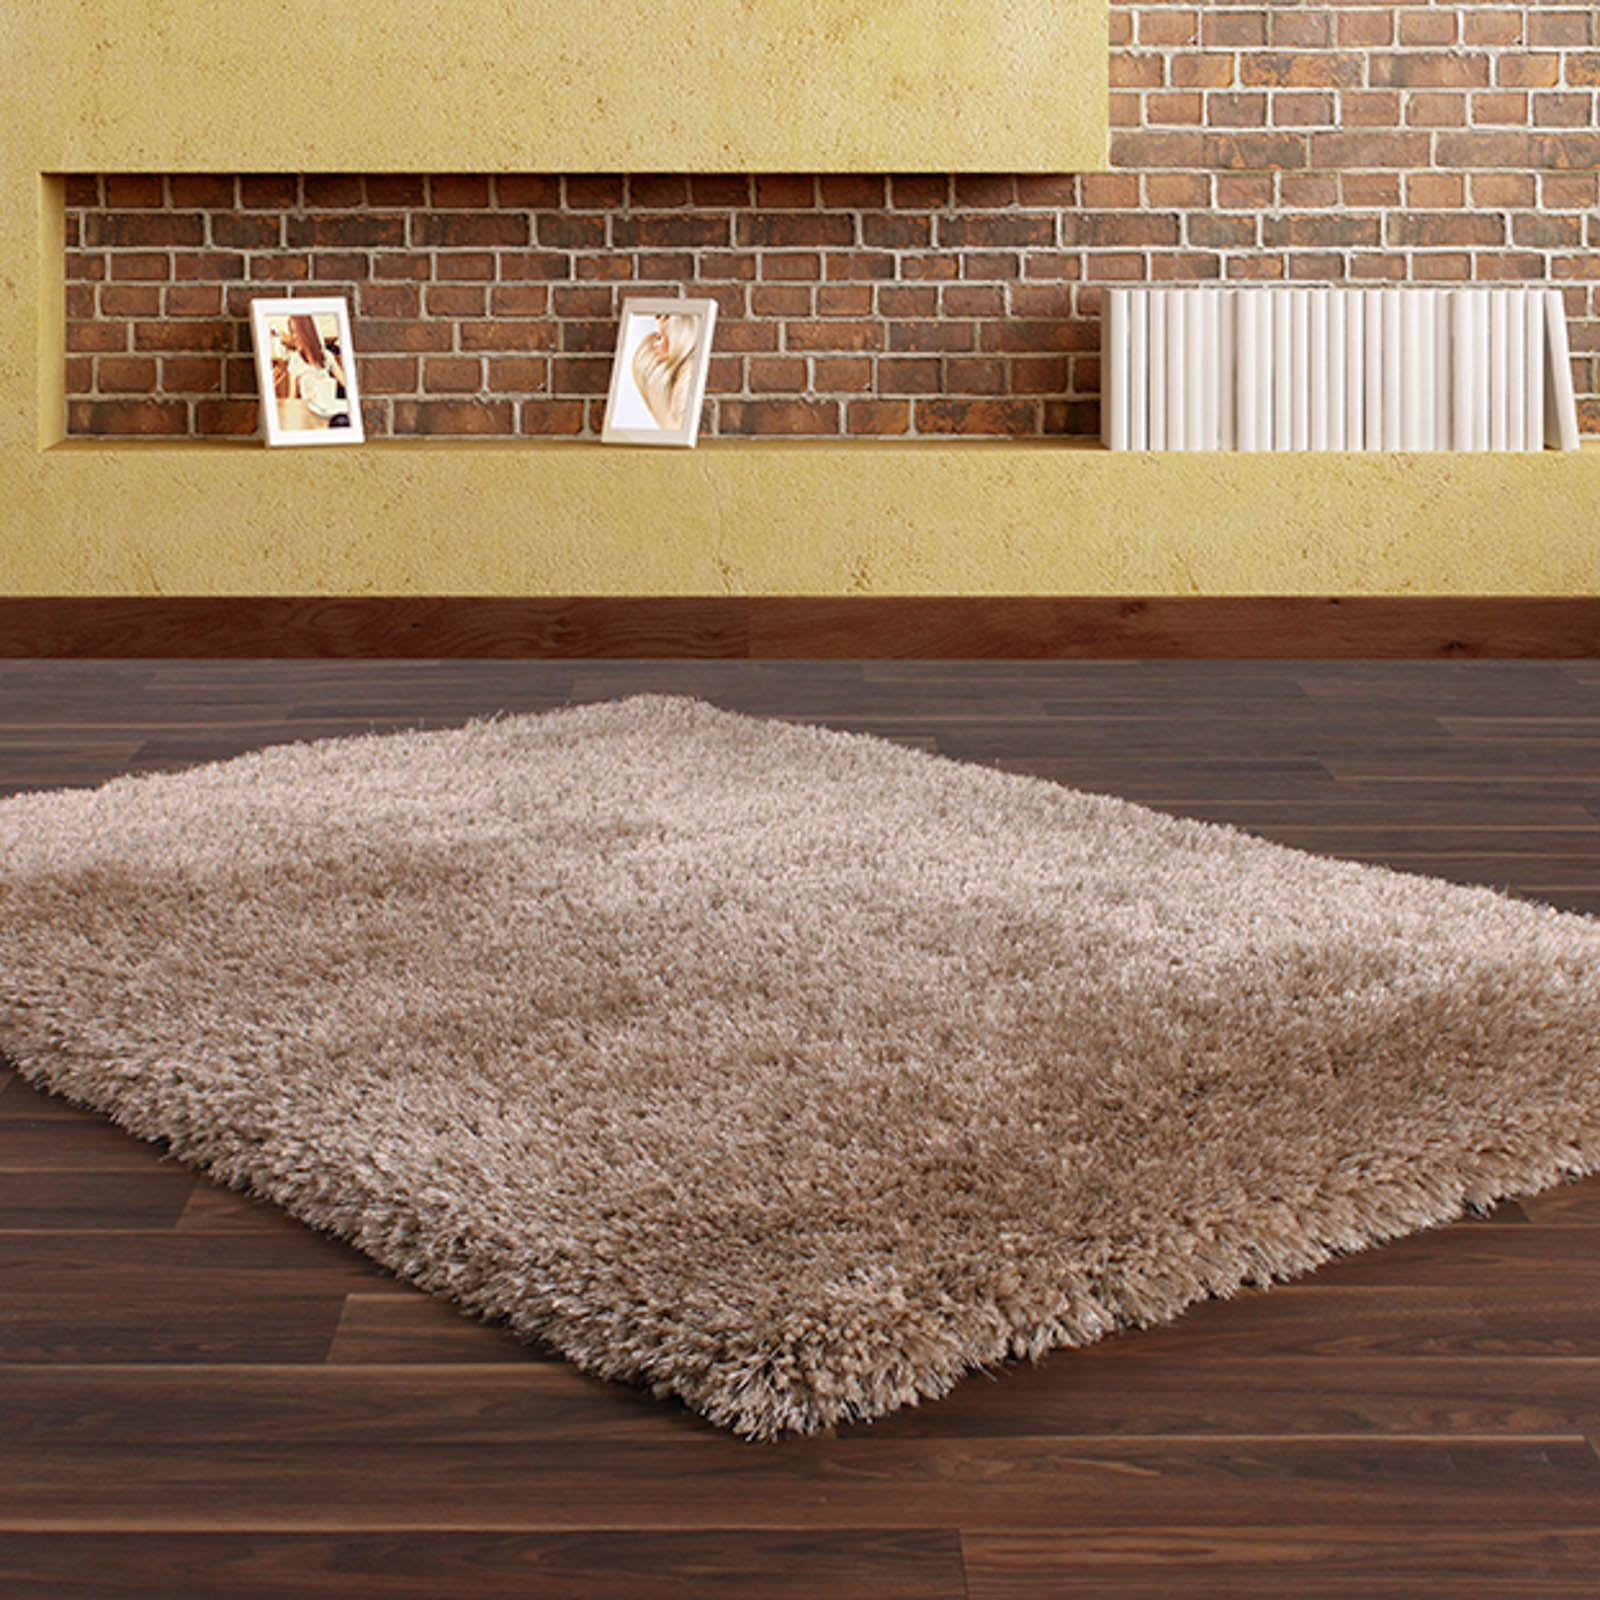 Allure Shaggy Rugs in Mink